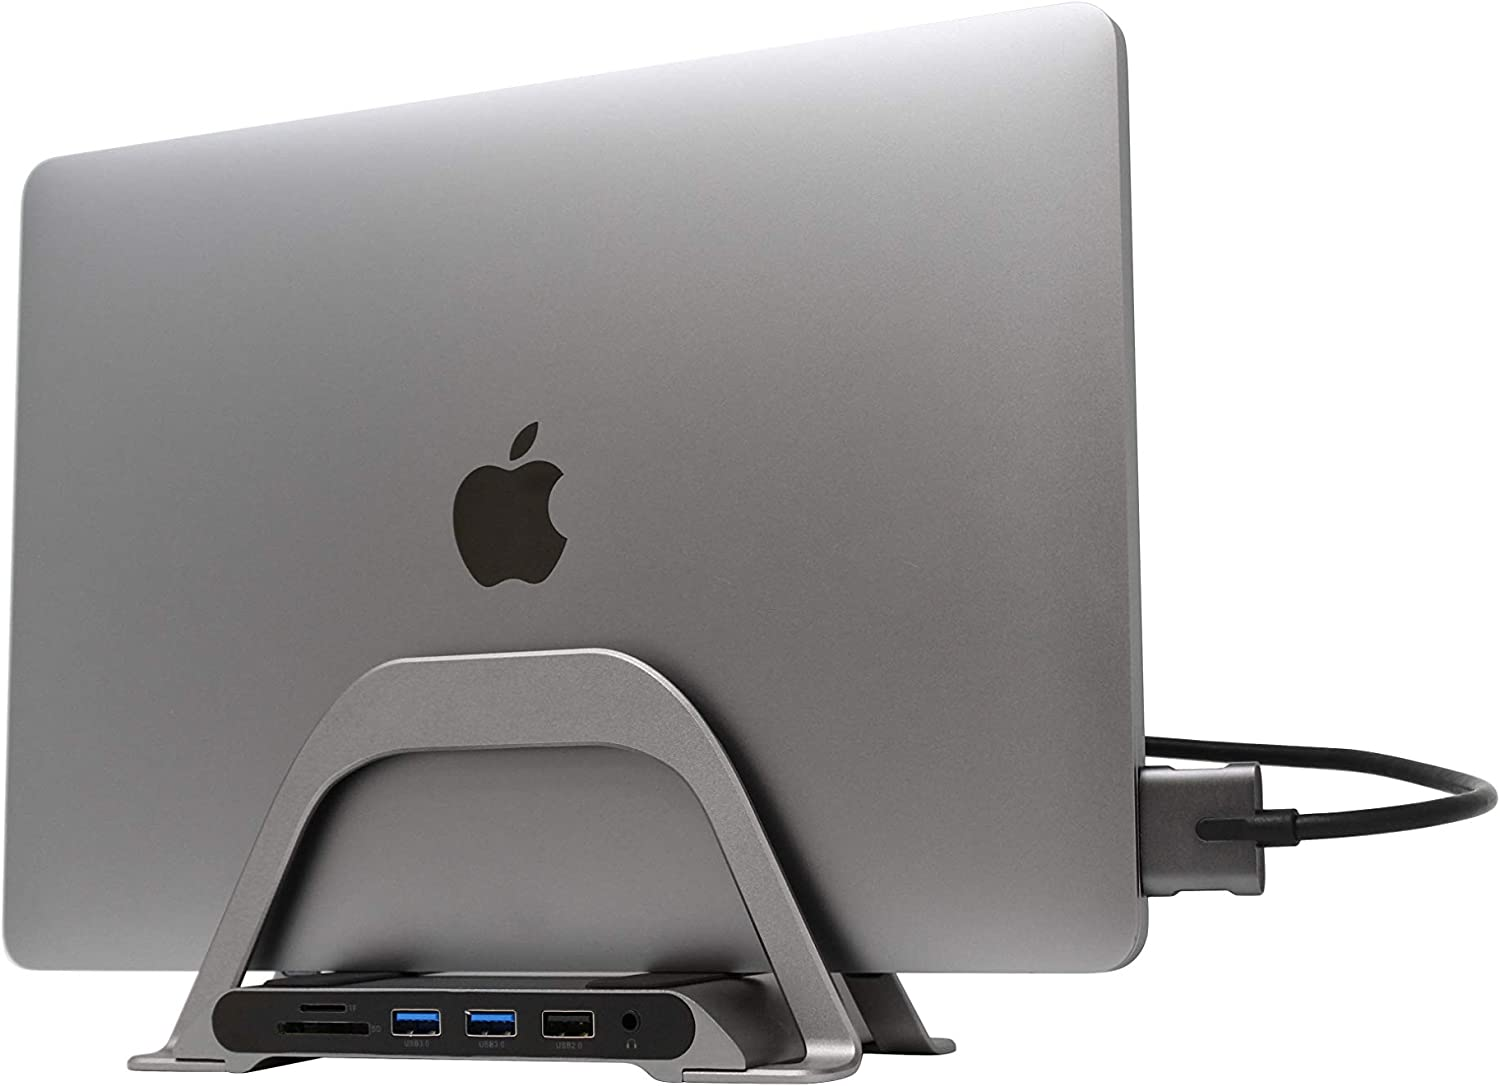 HumanCentric Vertical Stand for MacBook with Integrated 10-in-1 Dual Display Hub – USB-C Docking Station for MacBooks | USB-C Hub for MacBook Only